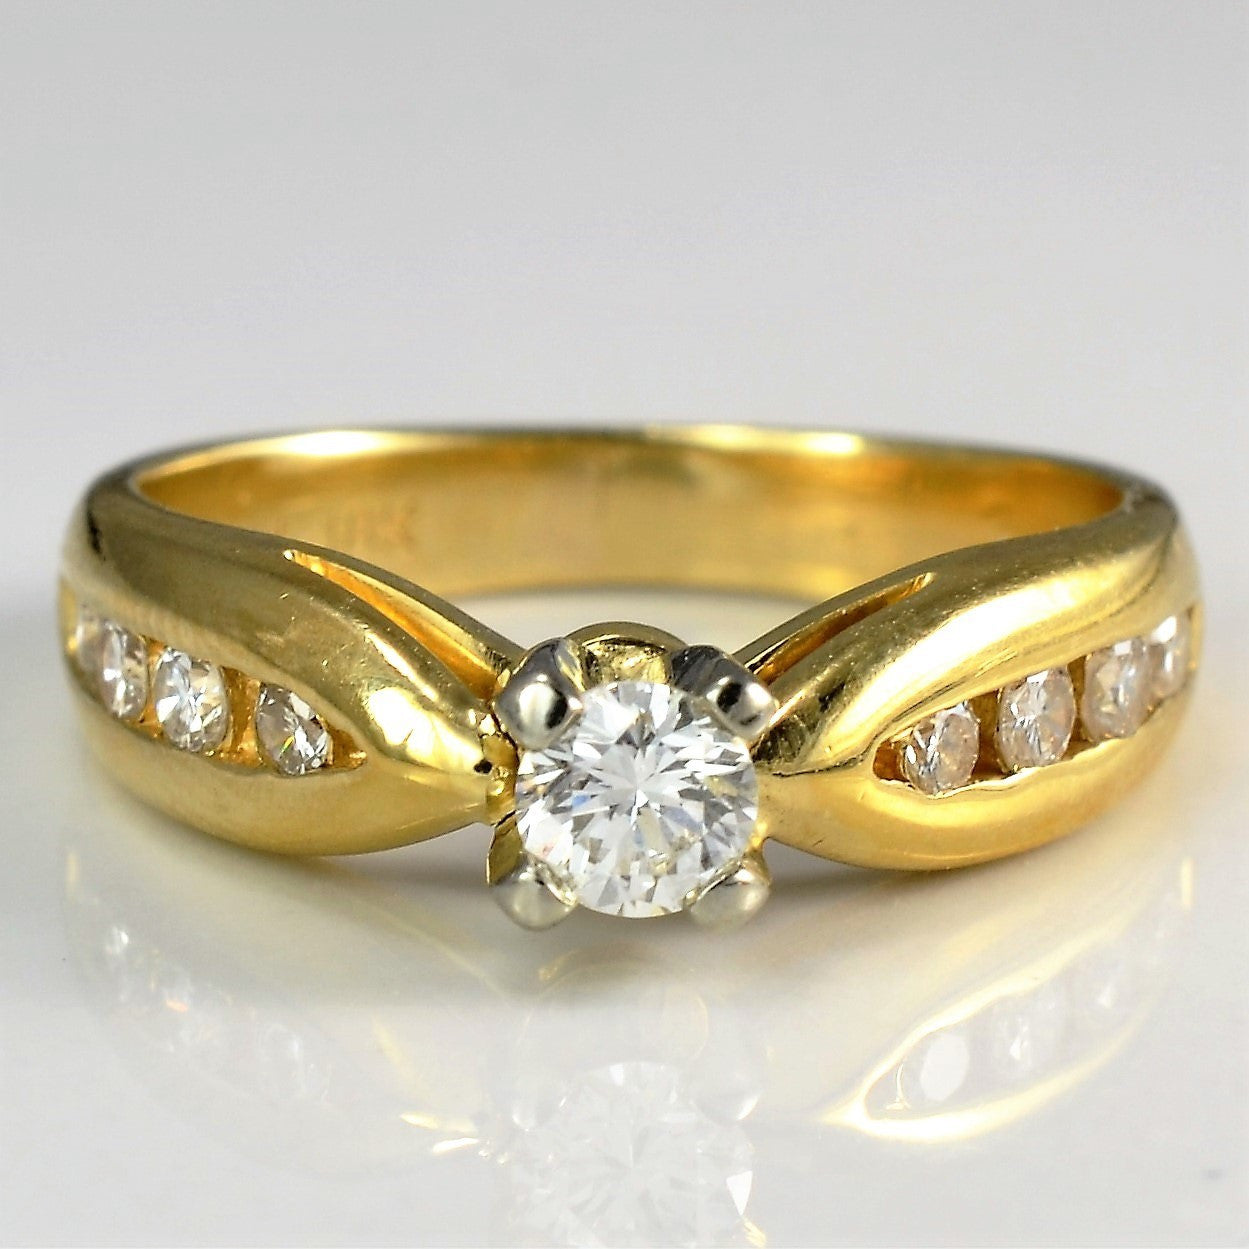 Wide Tapered Yellow Gold Engagement Ring | 0.38 ctw, SZ 5.5 |